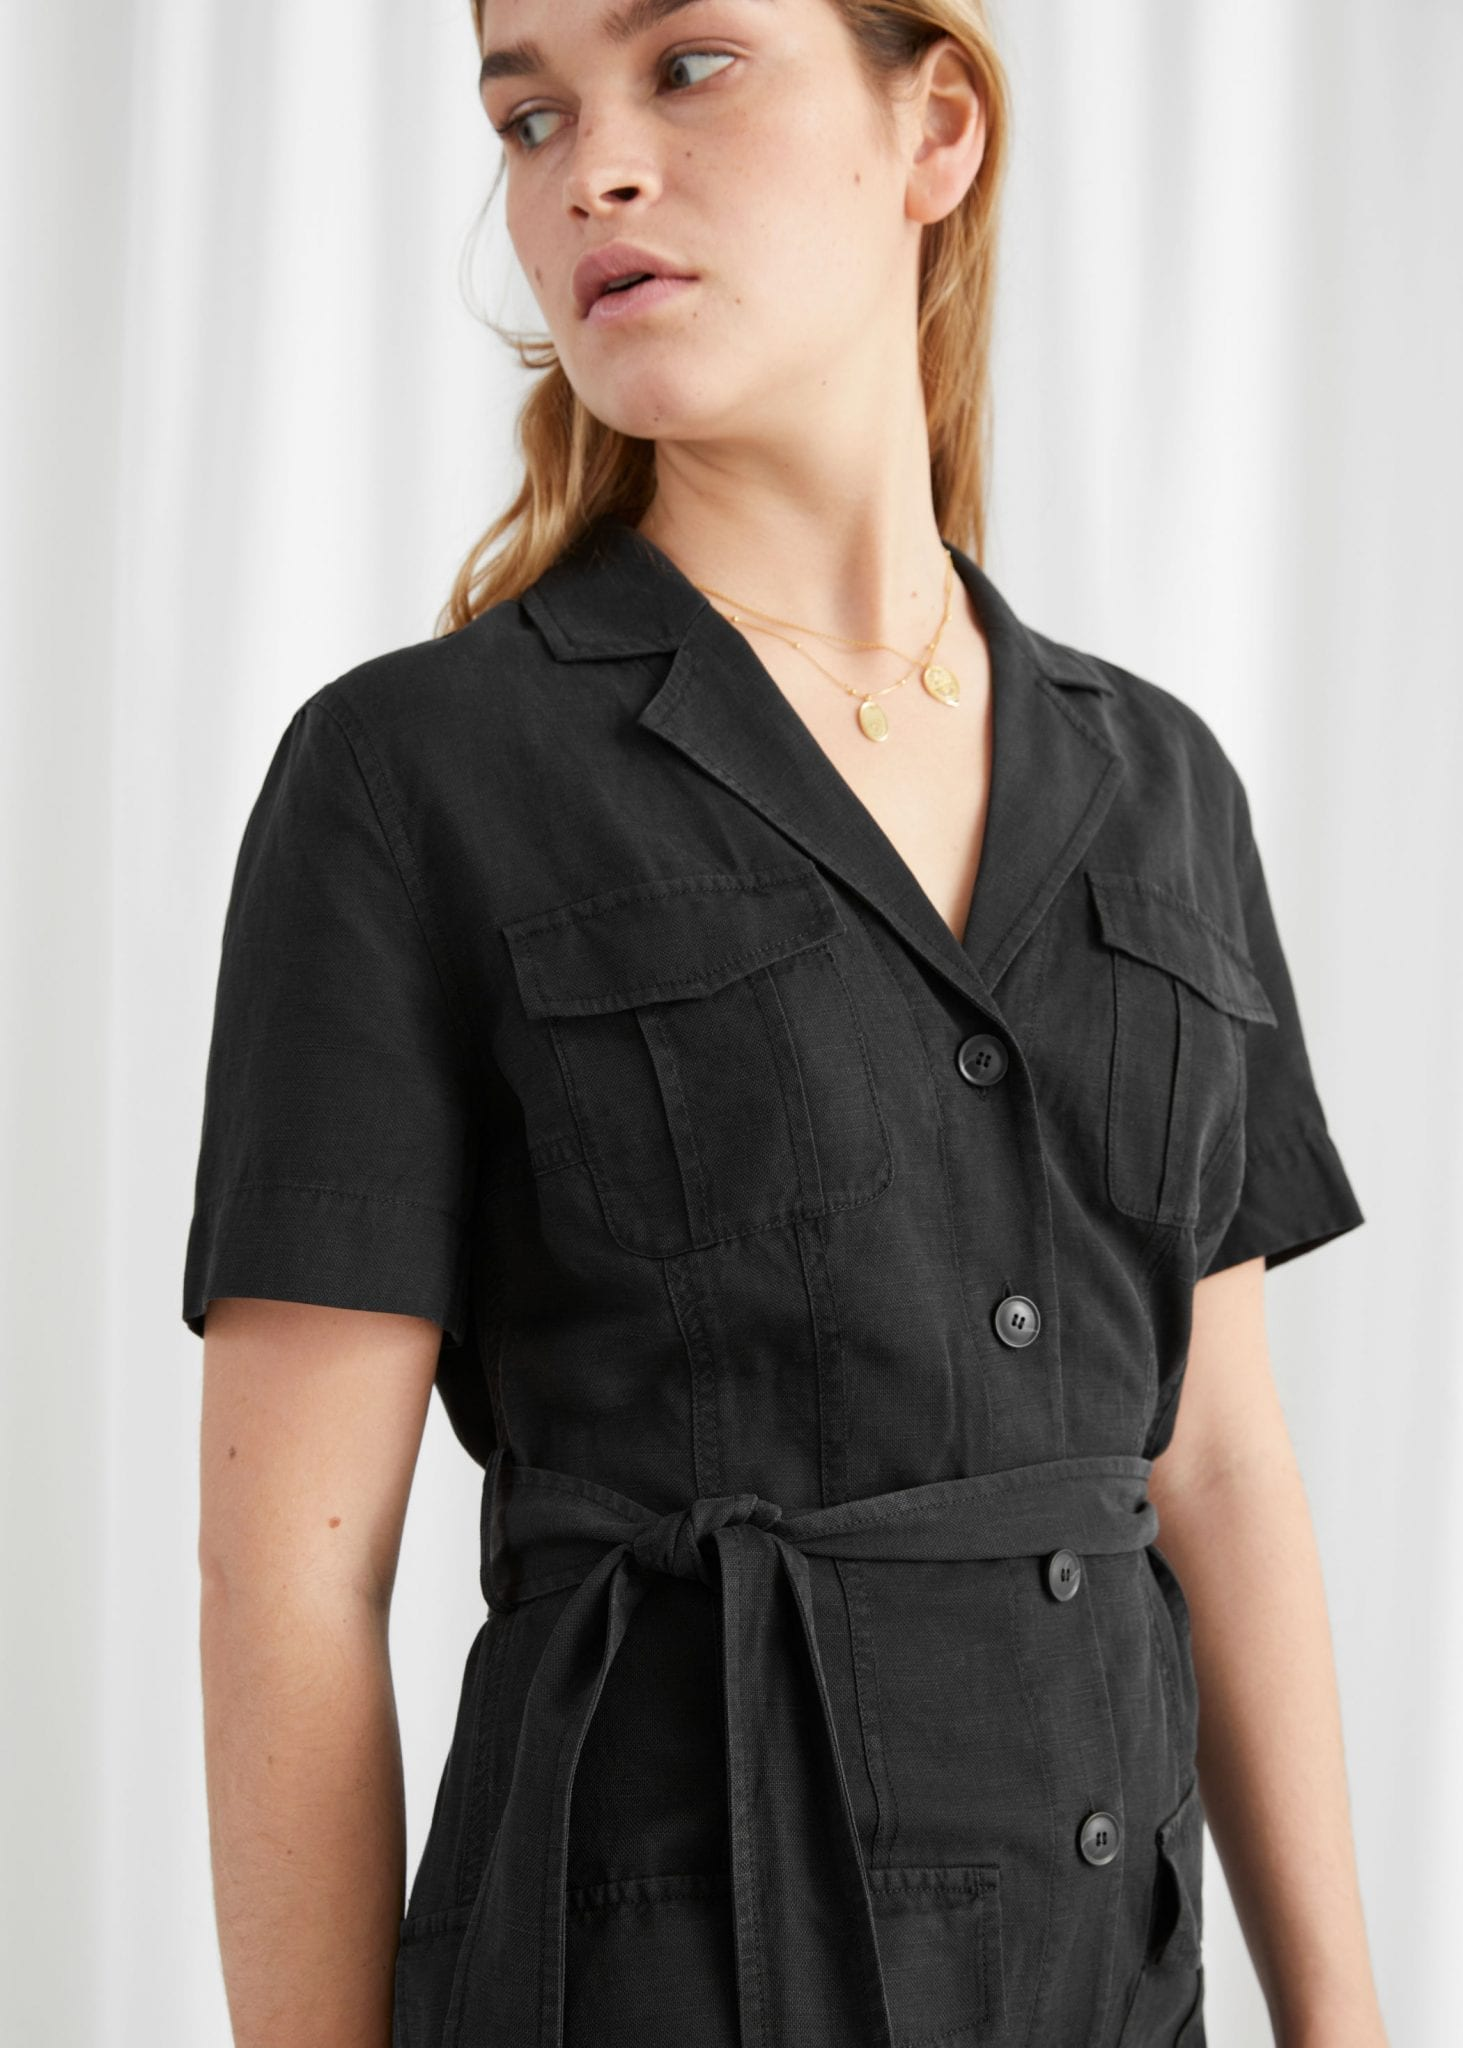 OTHER STORIES Belted Workwear Mini Dress